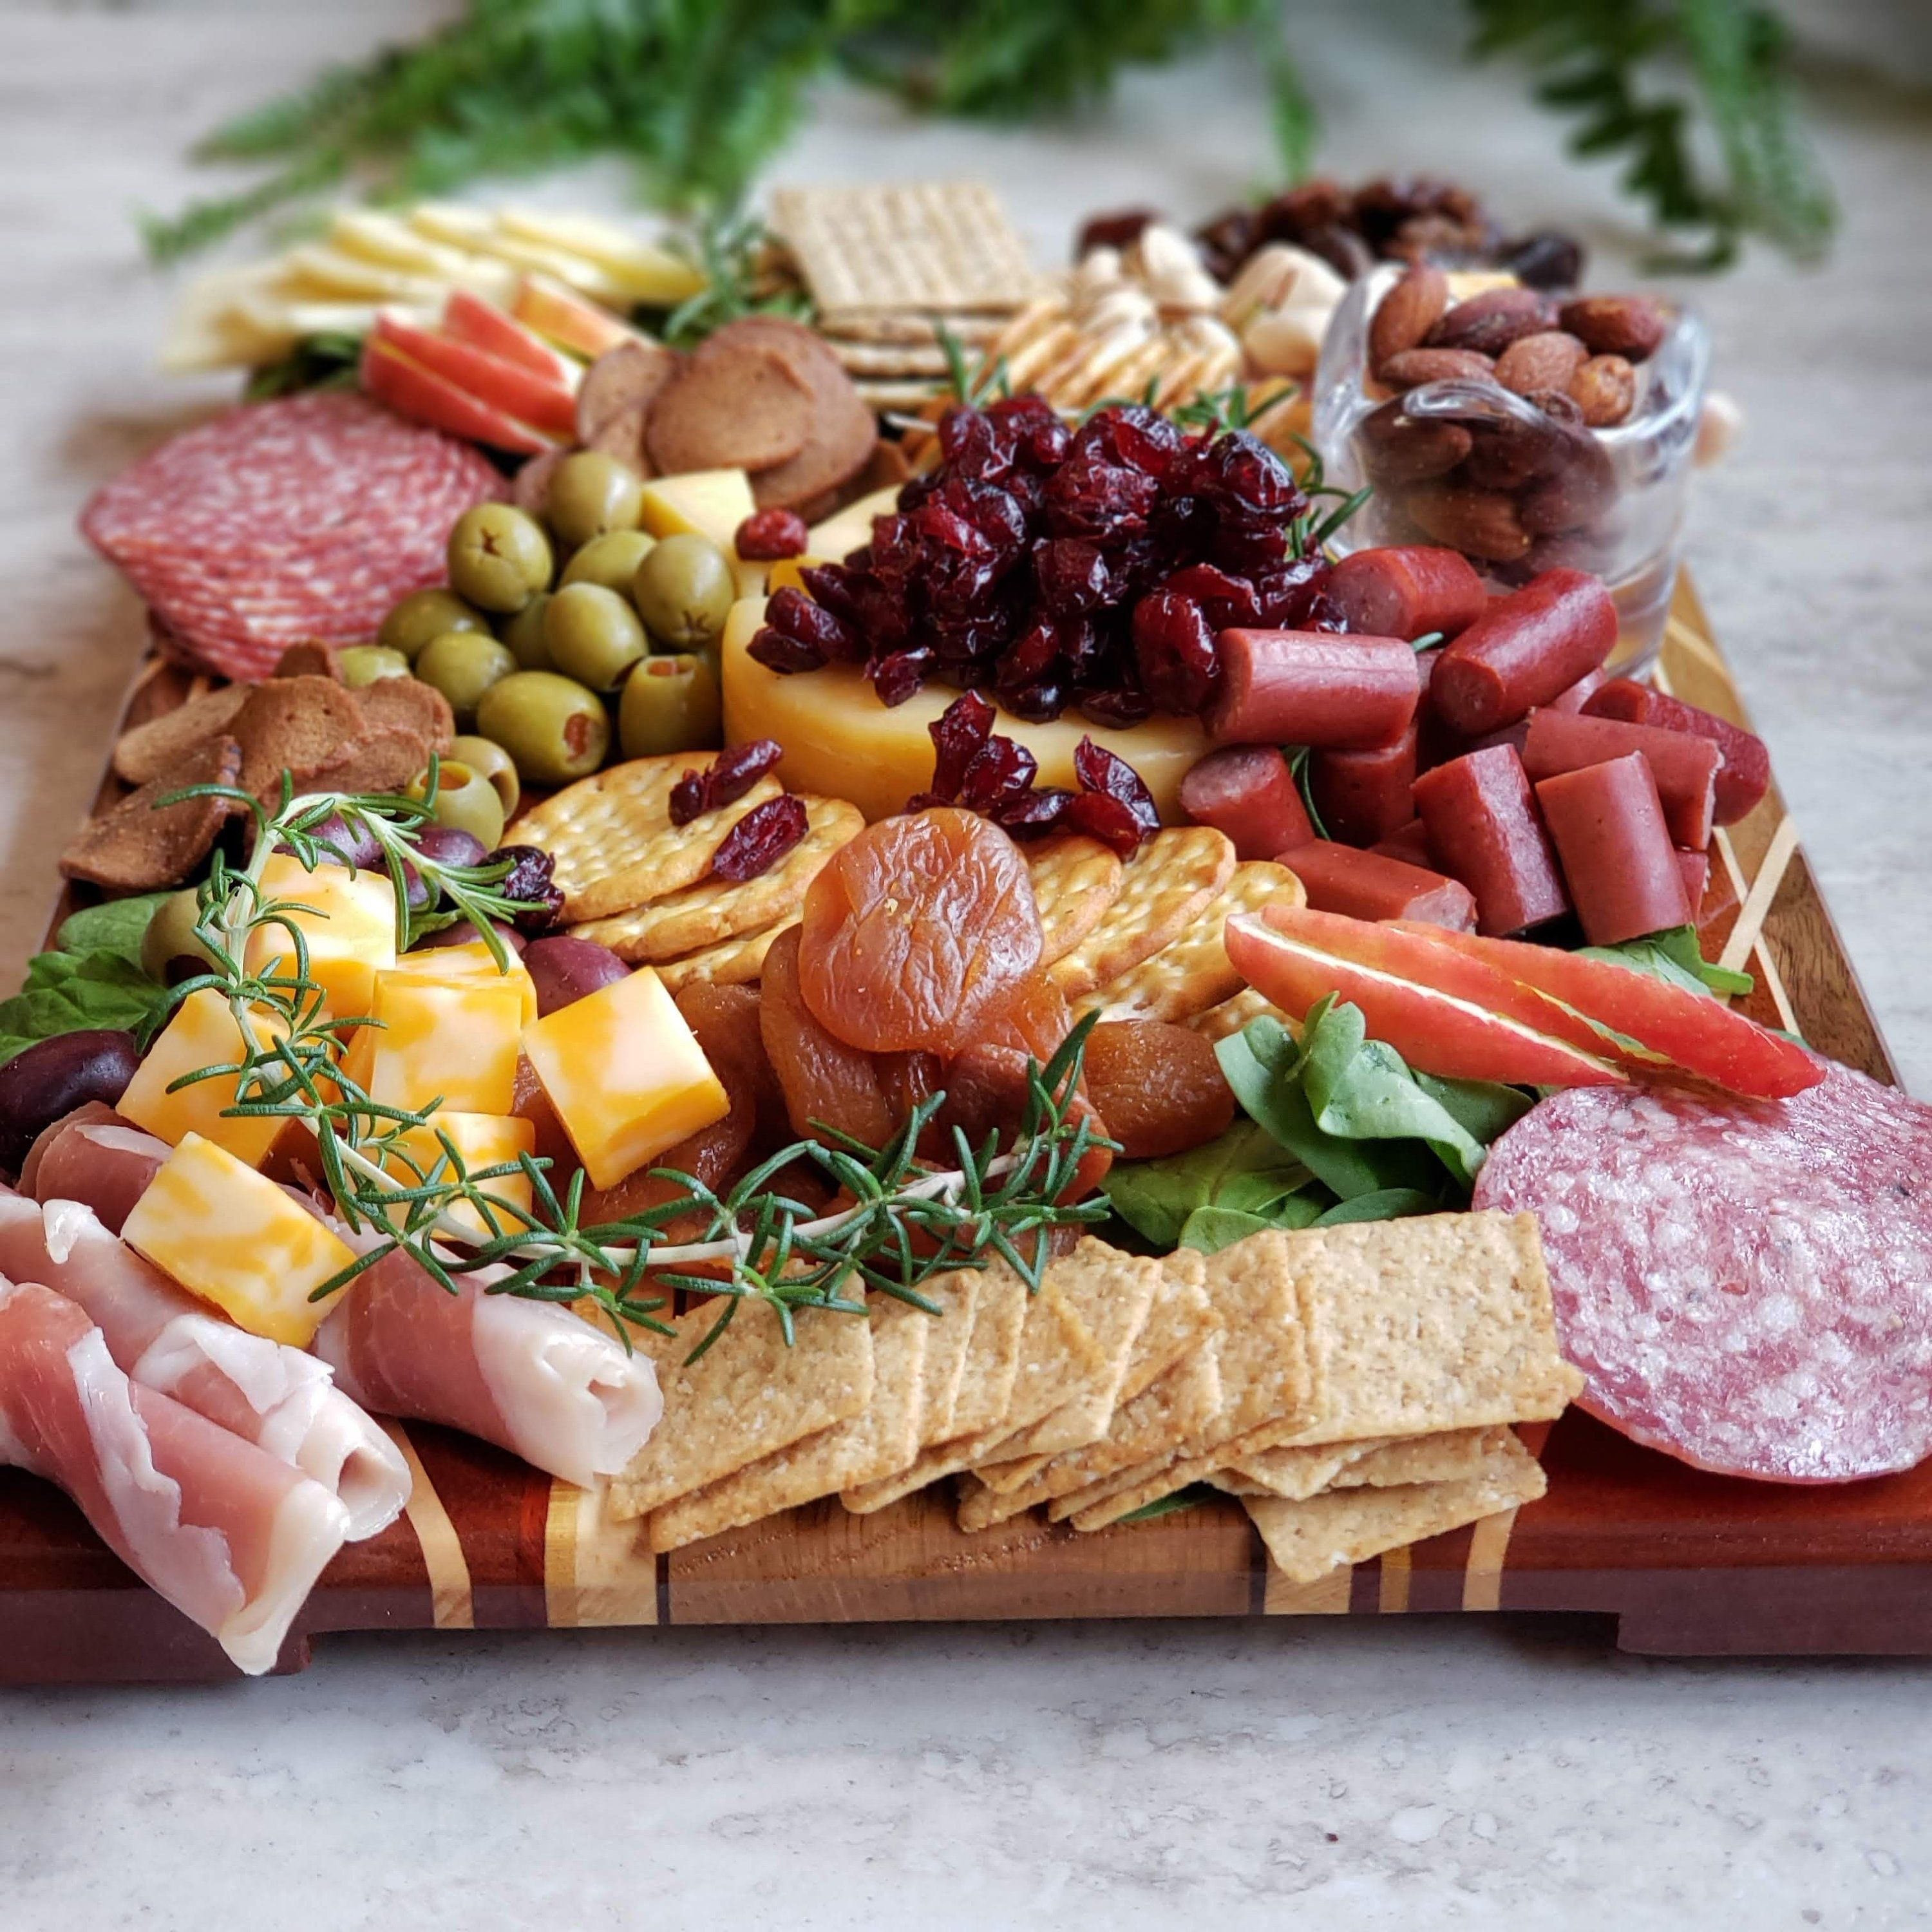 Pin On Charcuterie Board And Serving Board Displays